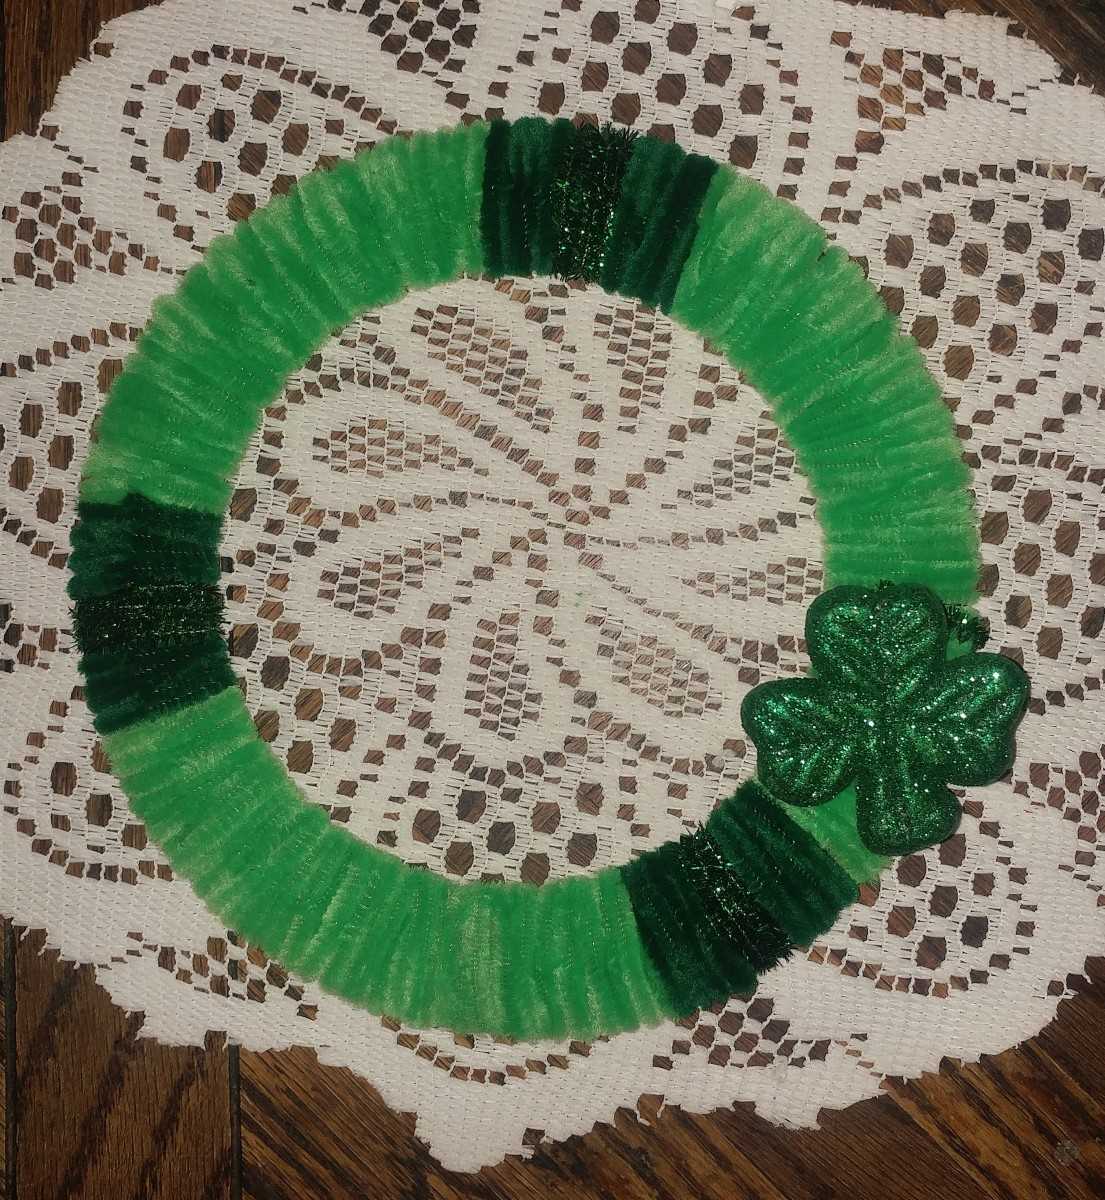 Wrap shamrock around wreath.